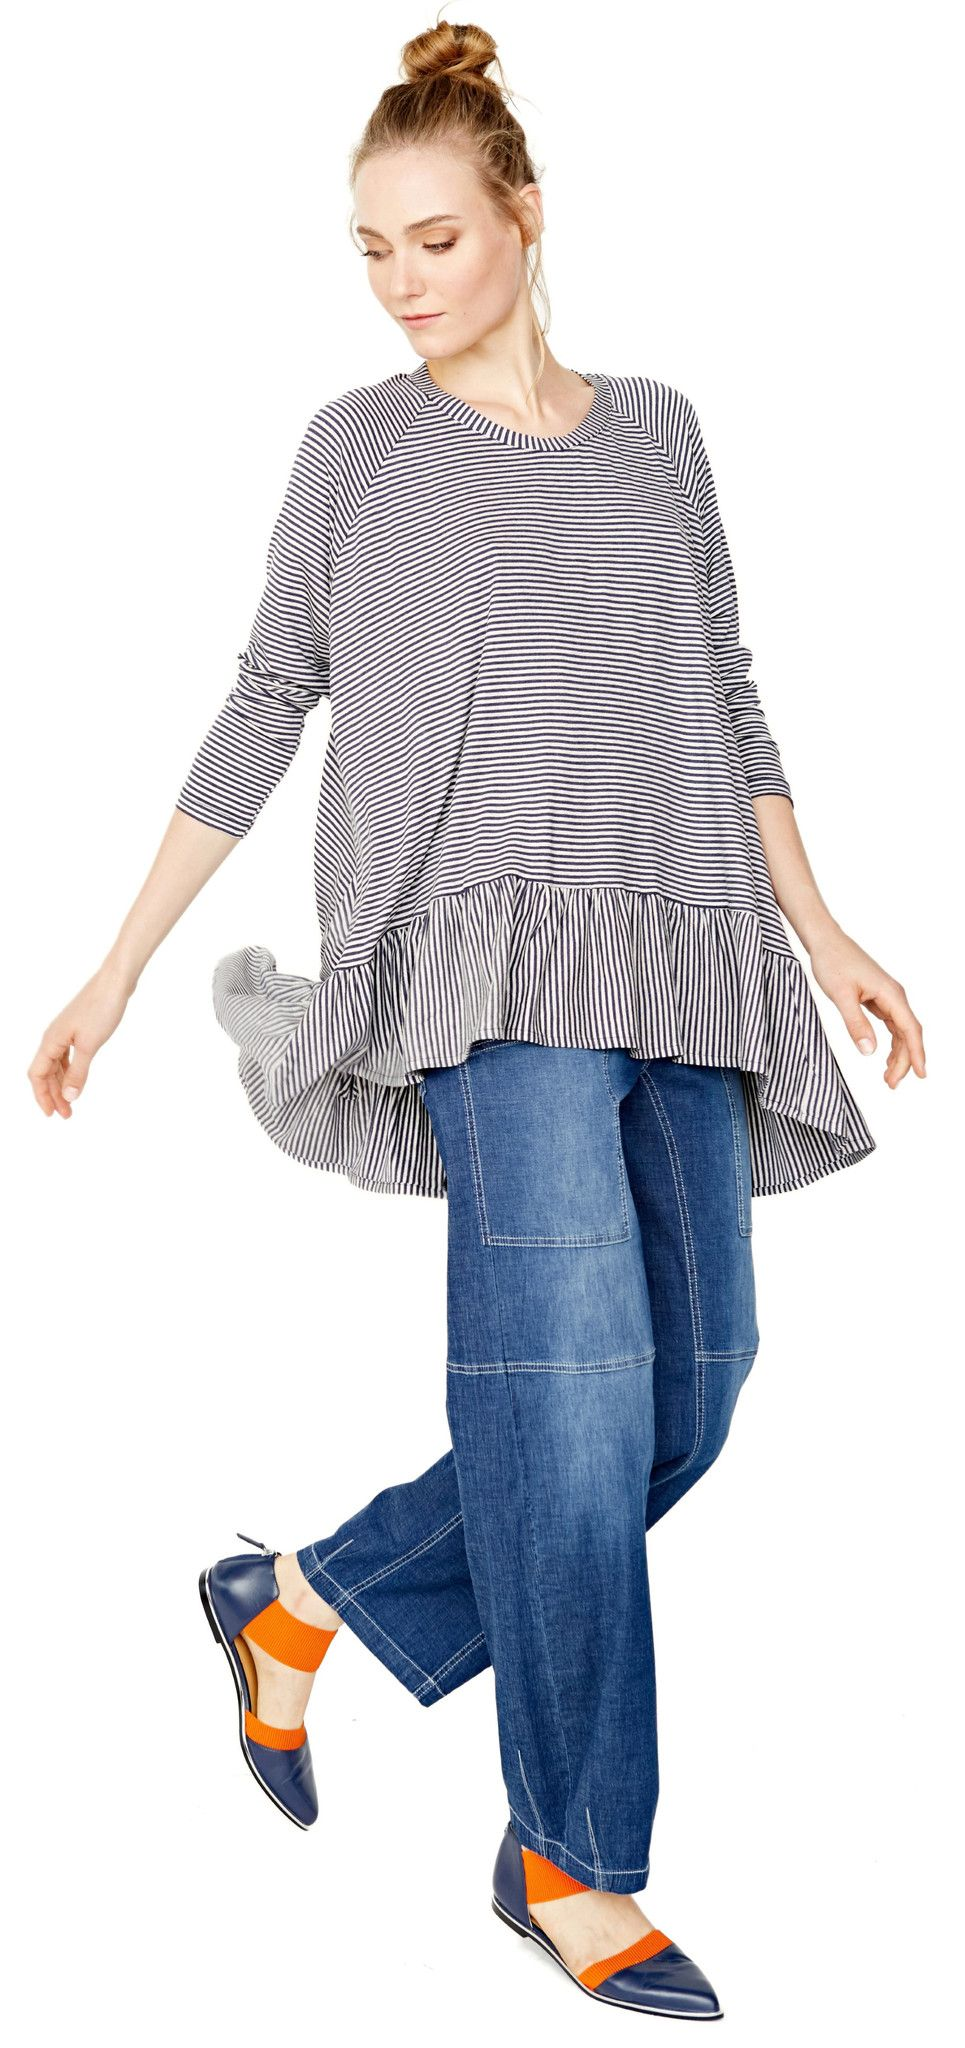 33a875e2310 Alembika tunic top shown with denim pant